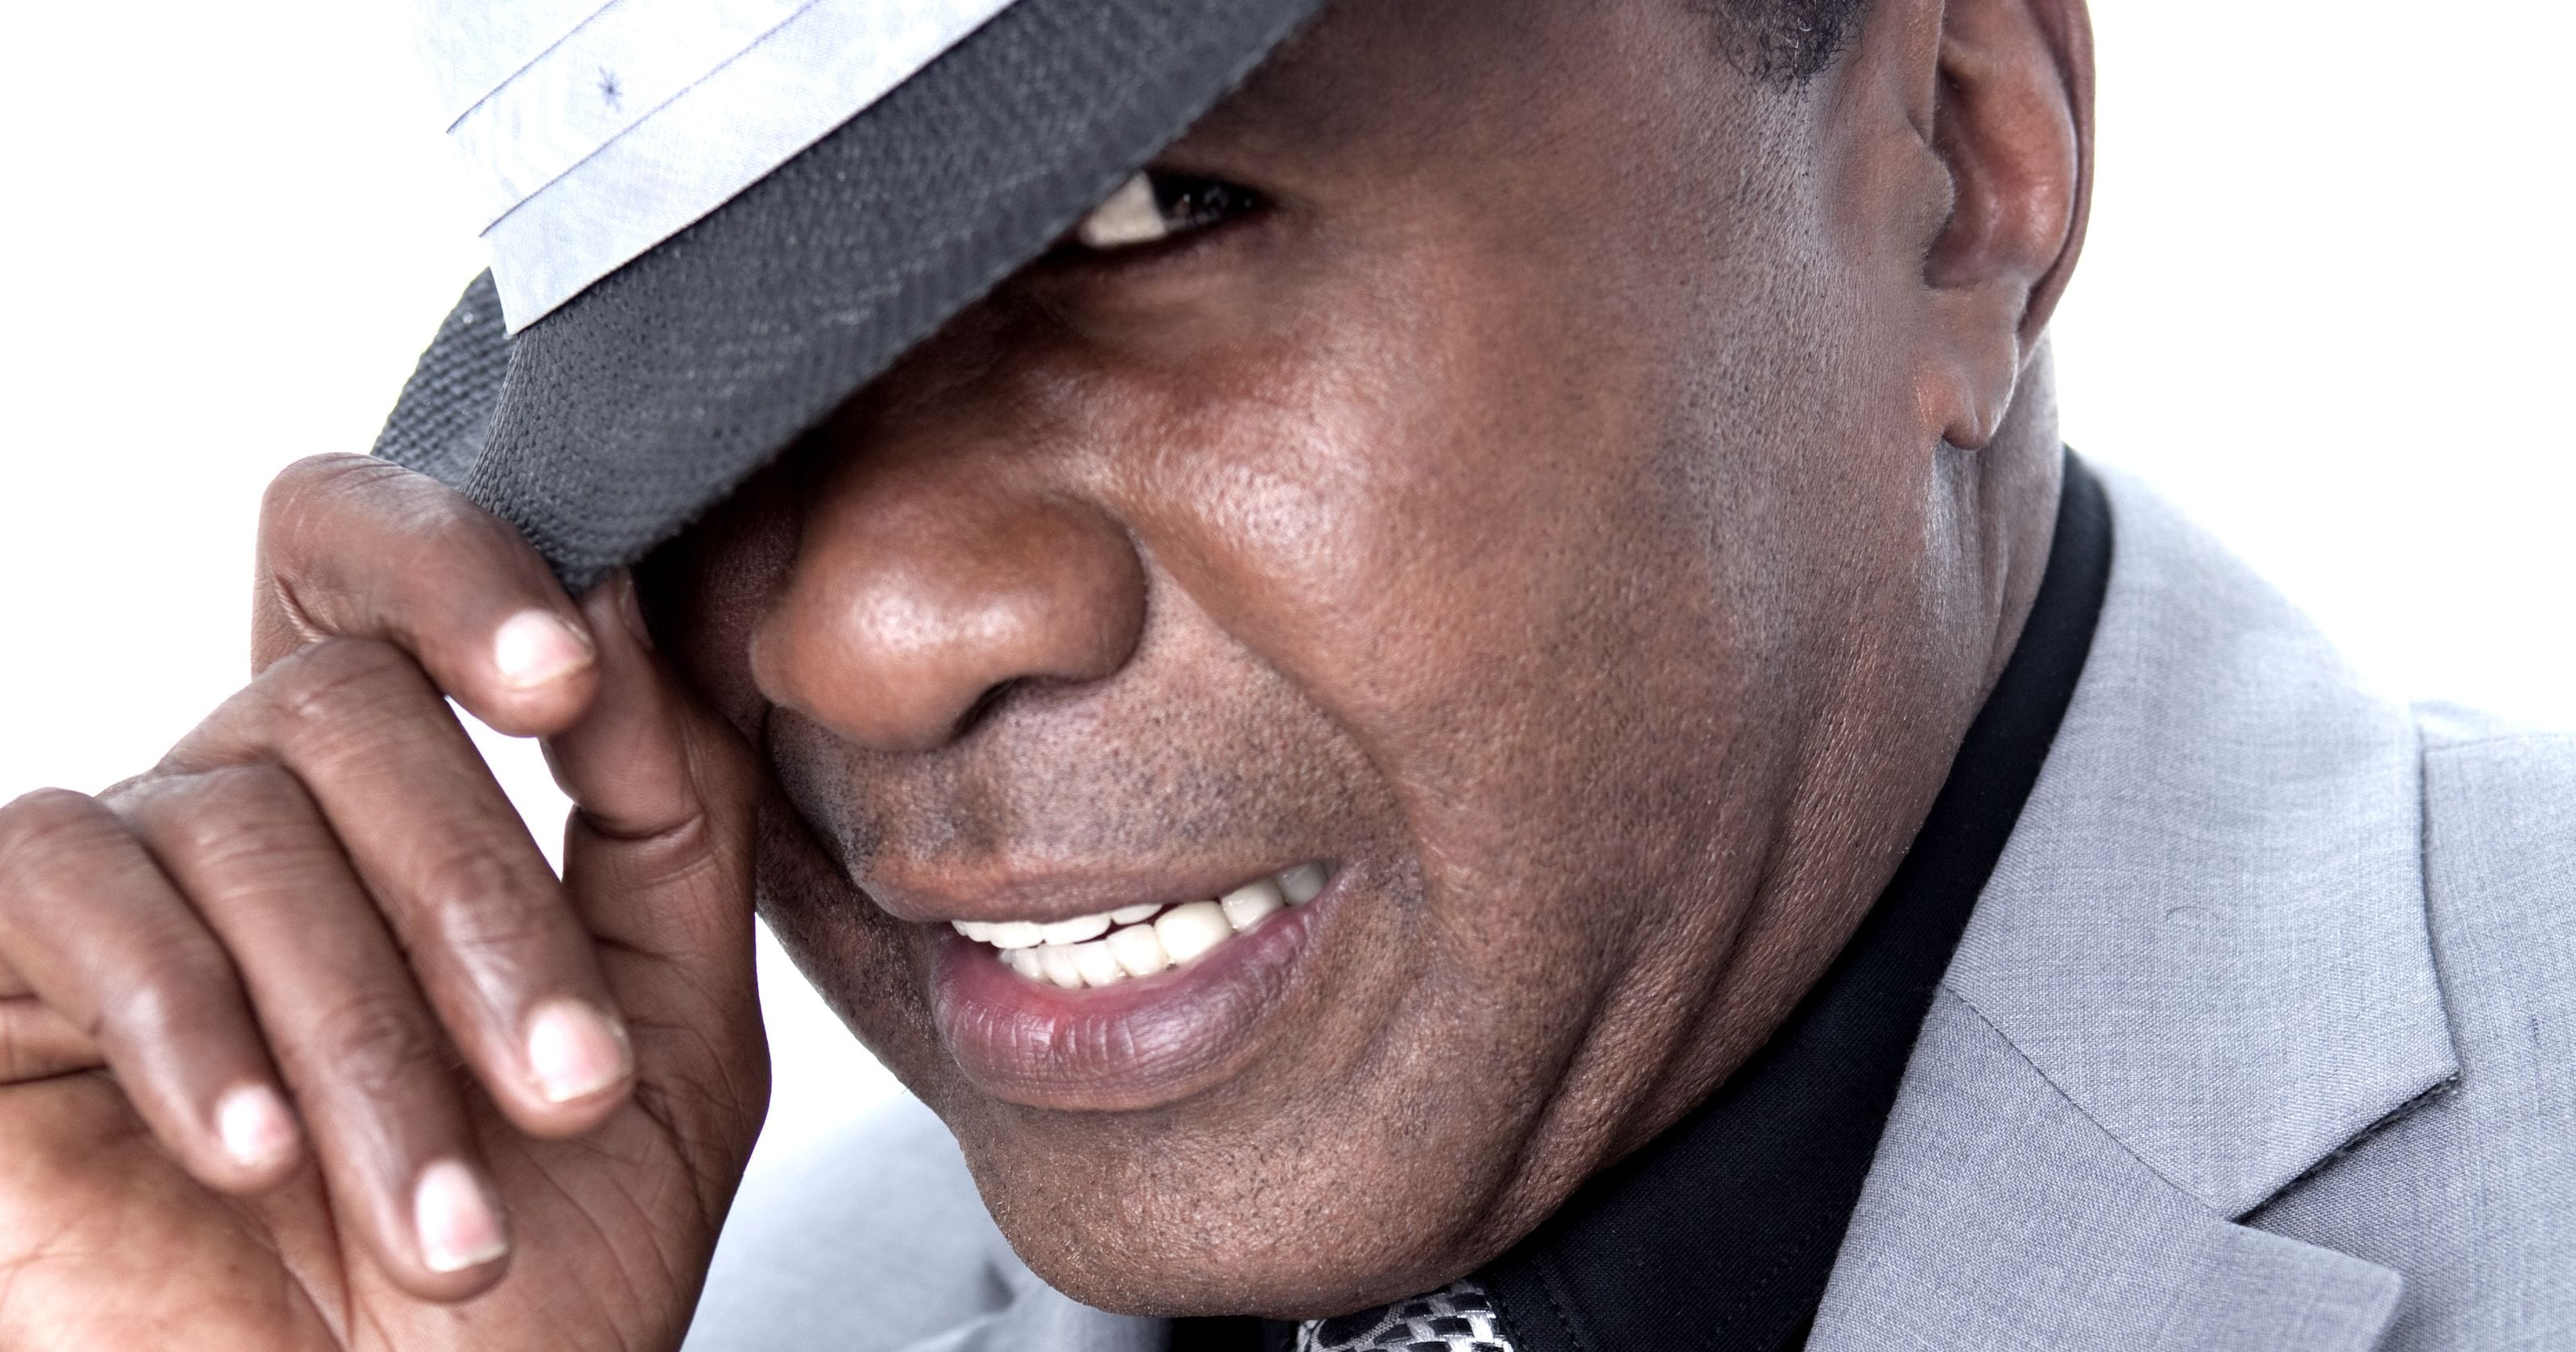 Ben Vereen Desktop wallpaper